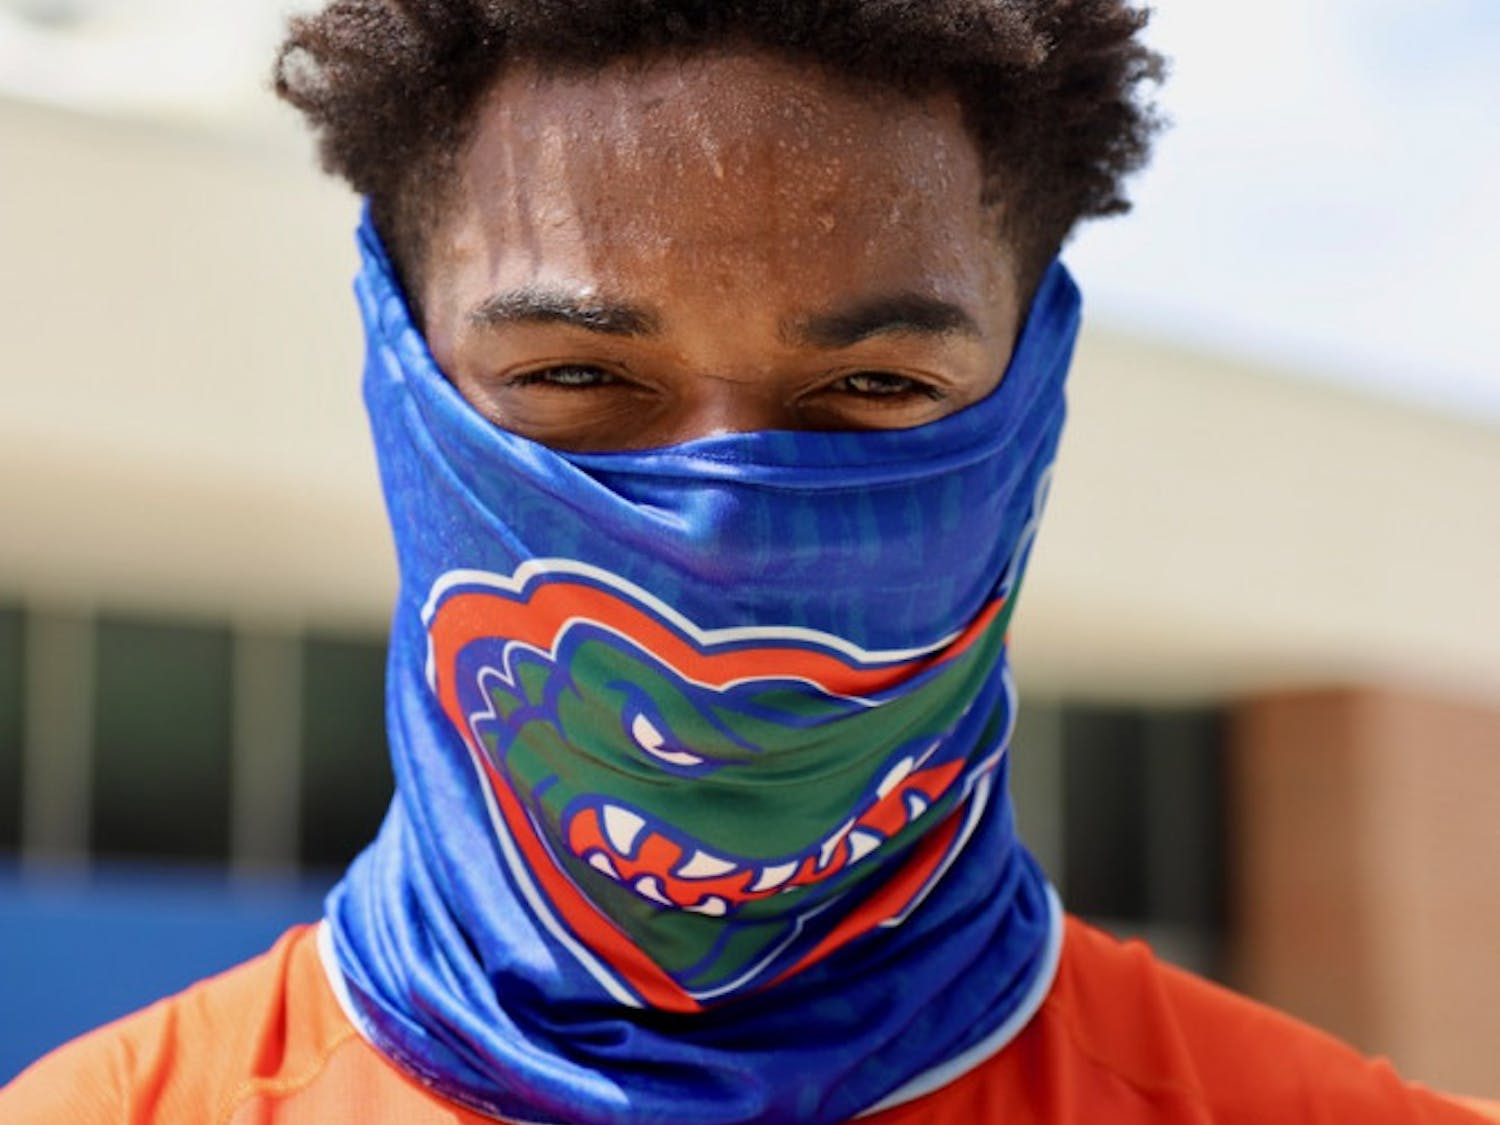 Redshirt juniorVentrellMiller wearing a mask outside of the O'Connell Center. On June 17, the NCAA approved a plan for schools to begin summer workouts in July for the upcoming fall football season.